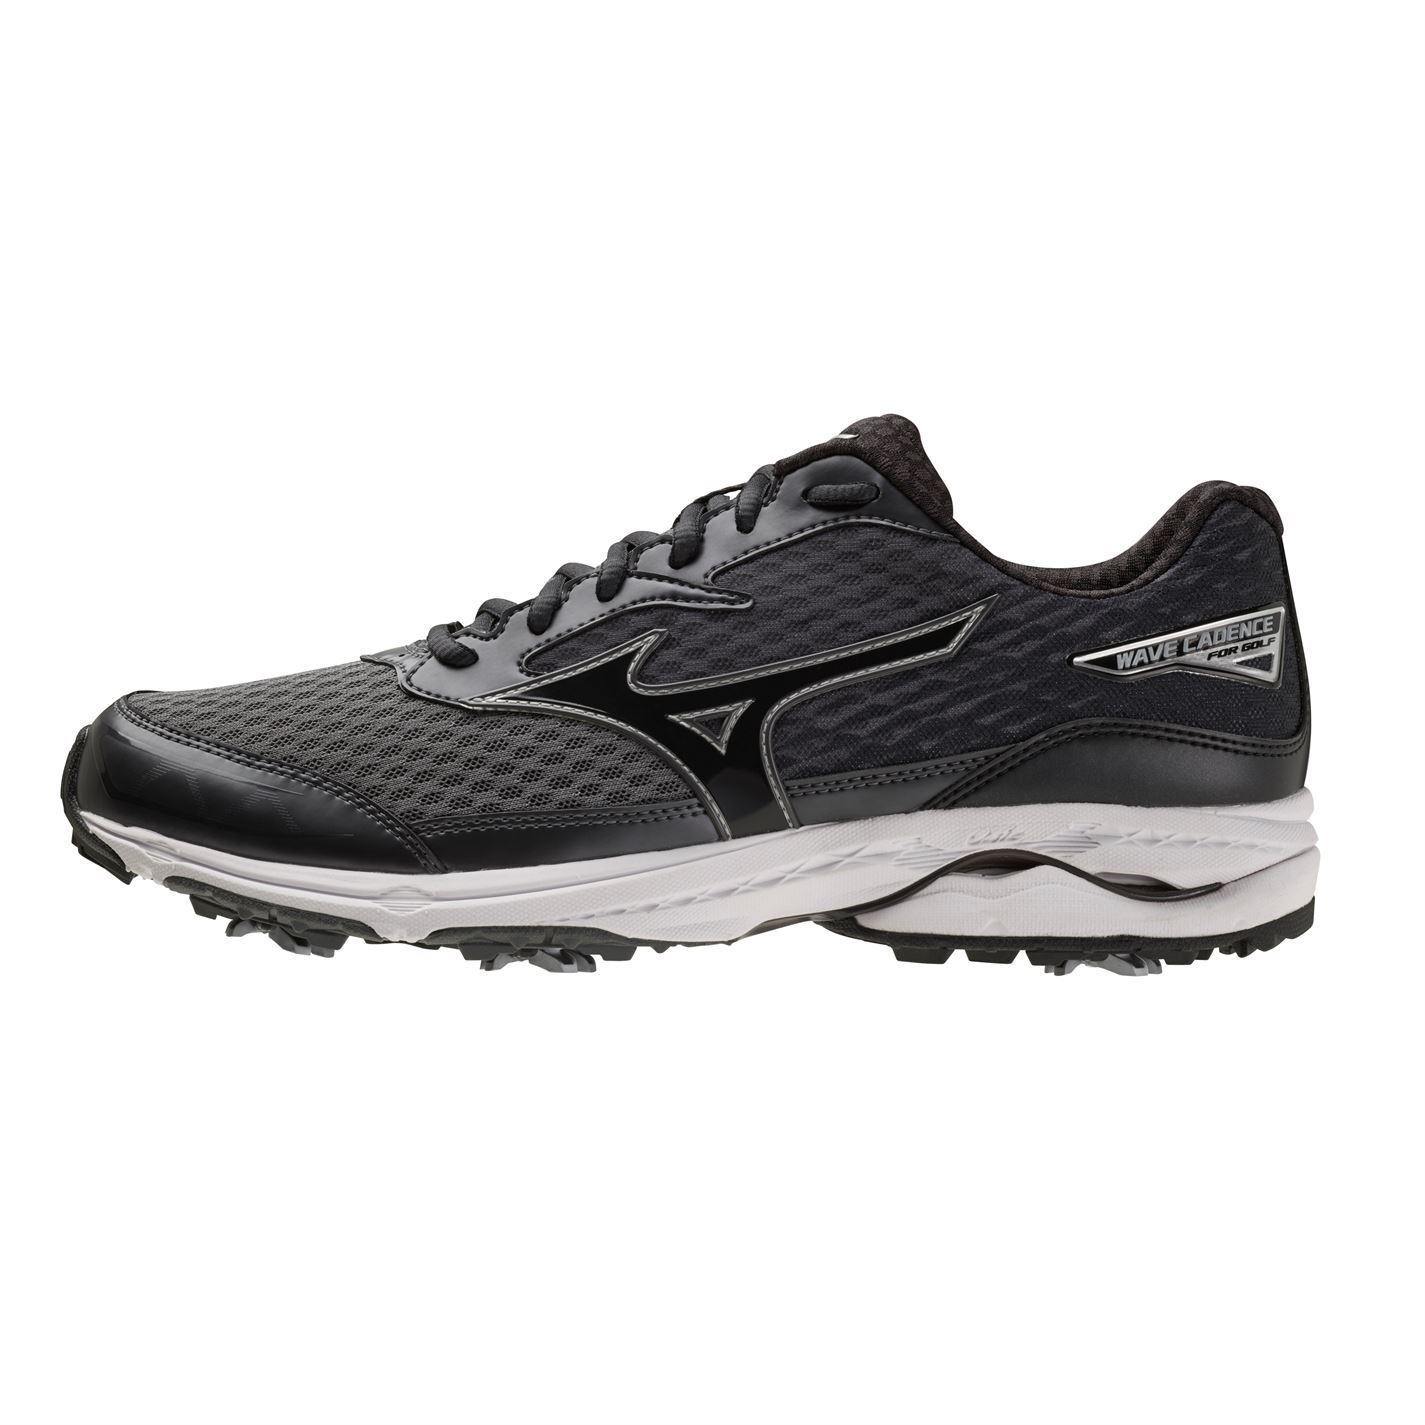 Mizuno-Wave-Cadence-Golf-Shoes-Mens-Spikes-Footwear thumbnail 3